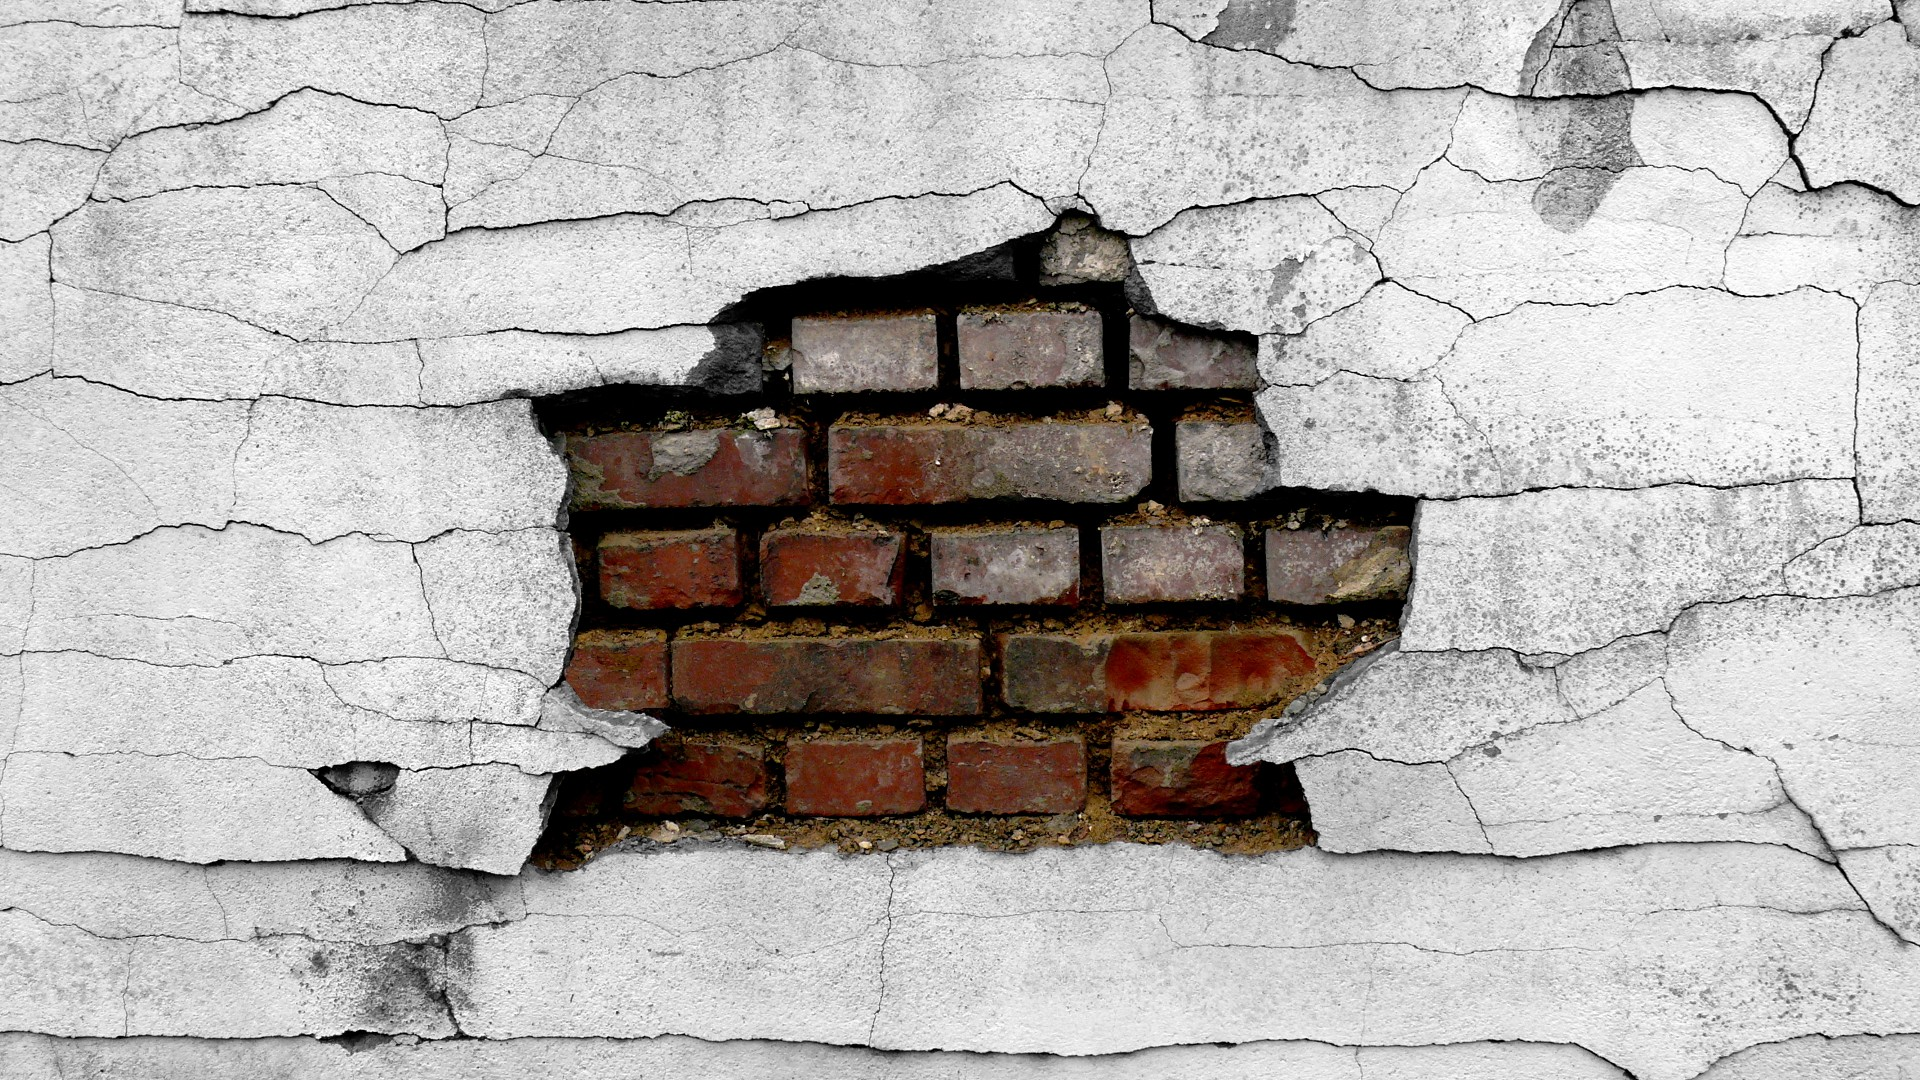 1920x1080 Wall Cracked Broken Brick Wall Wallpaper 1920x1080 48640